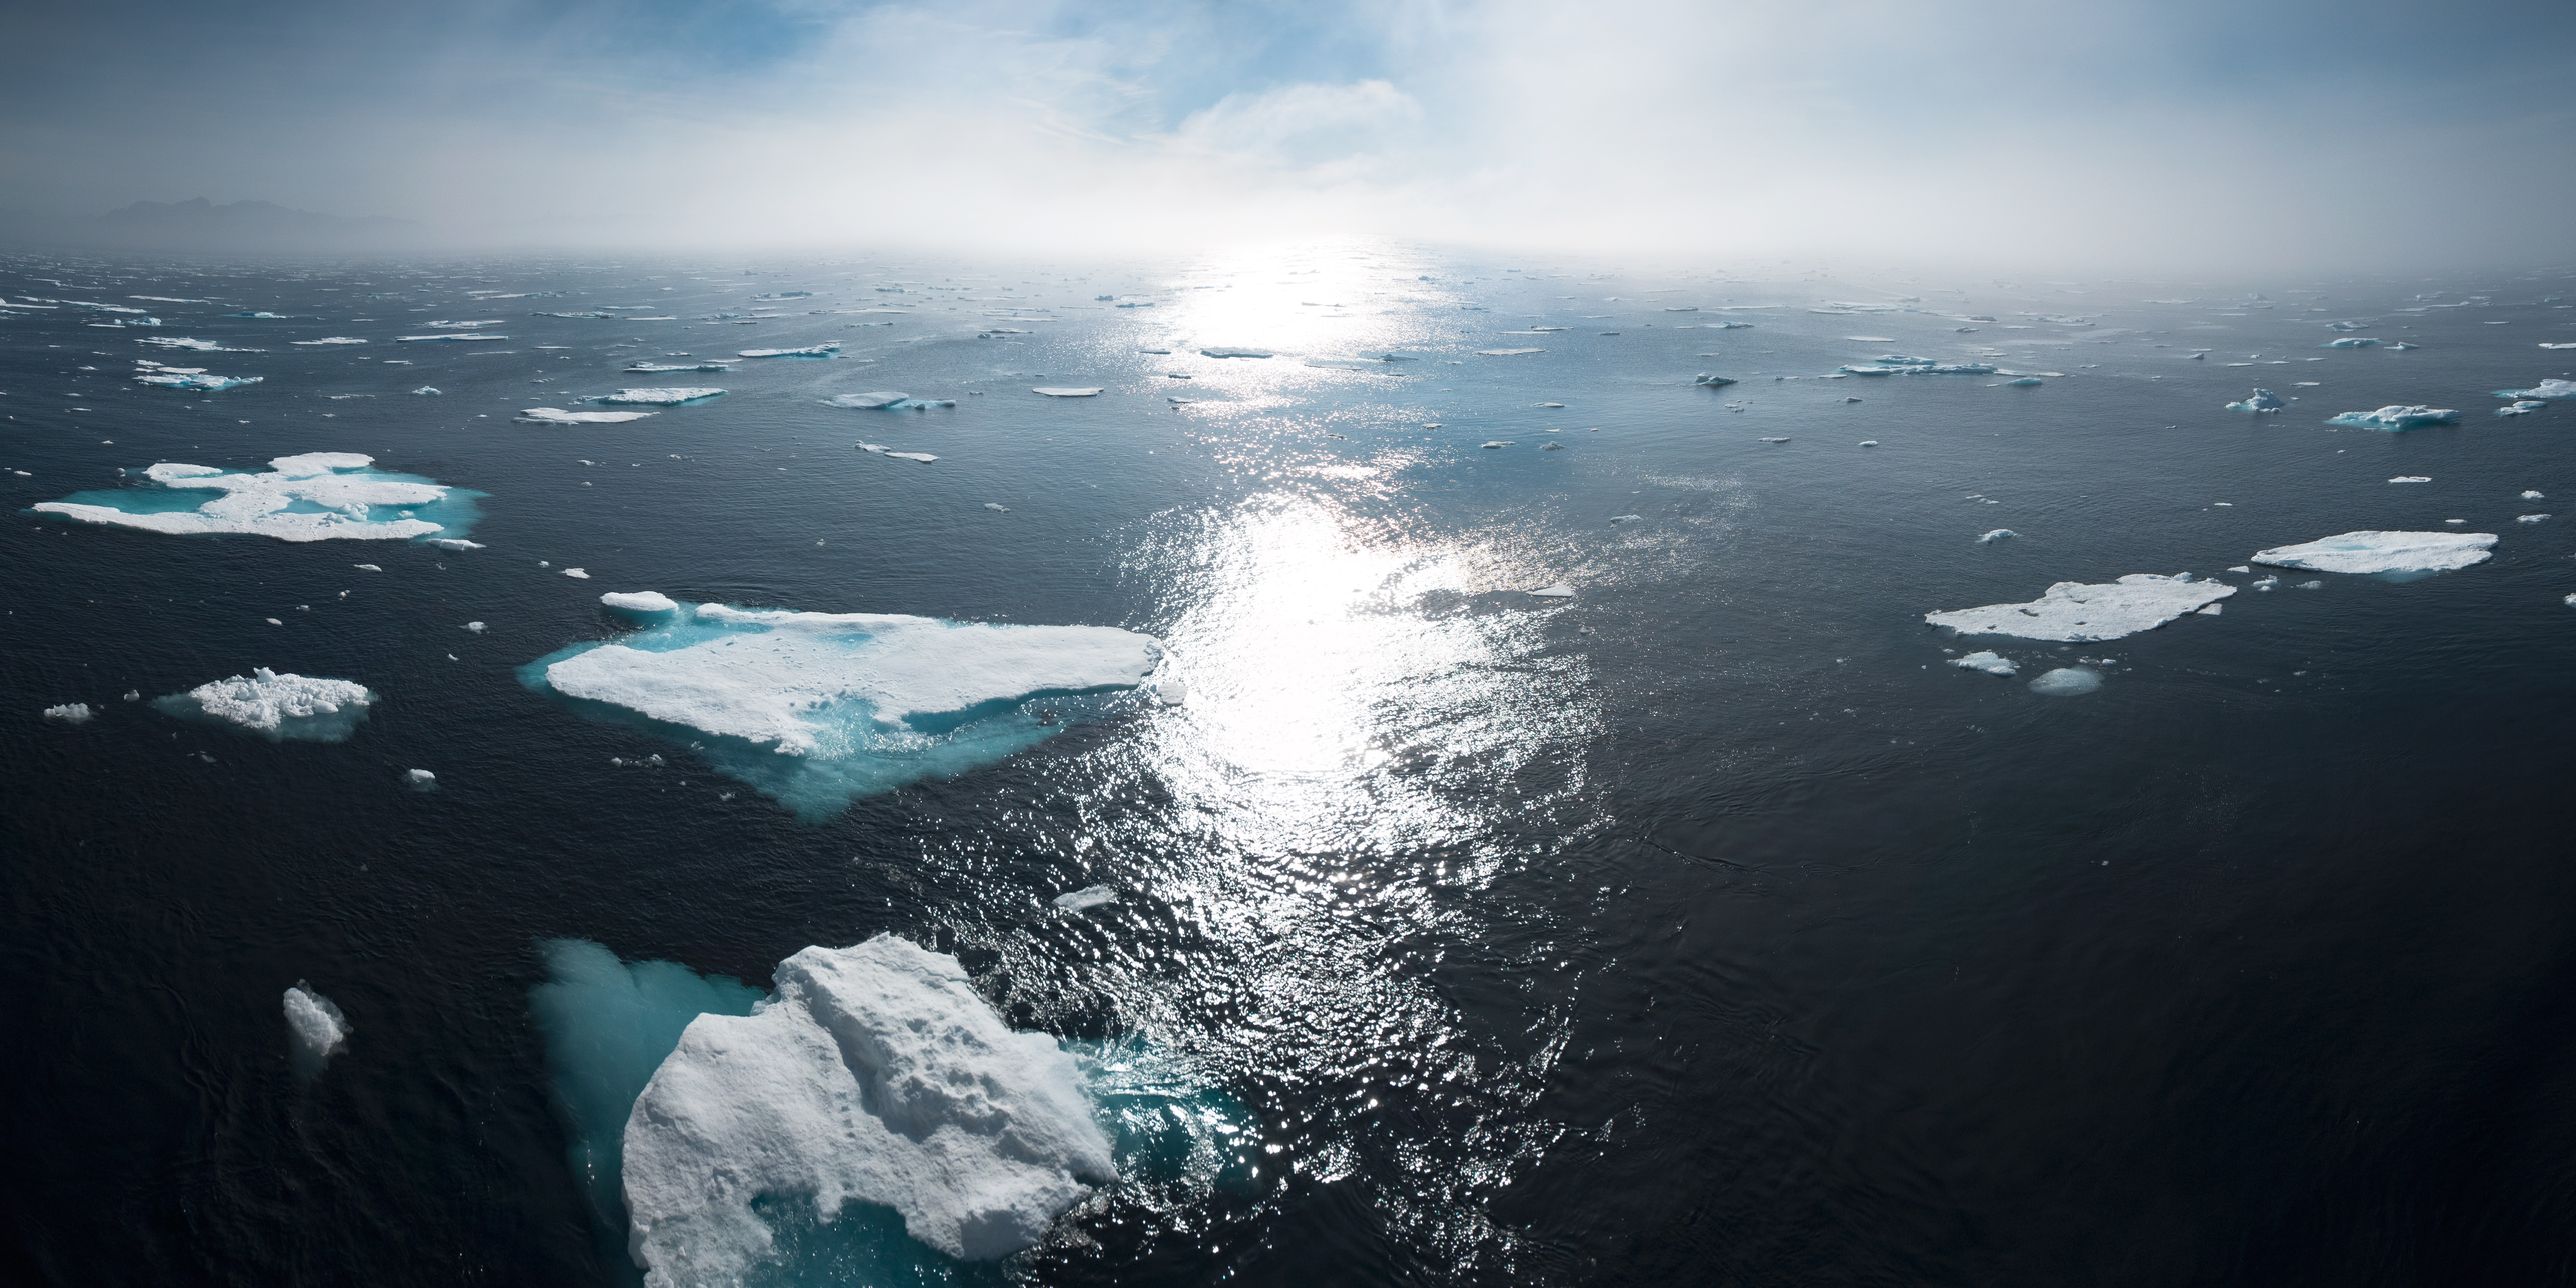 News: The IPCC report is a wake-up call for immediate, wide-reaching climate action